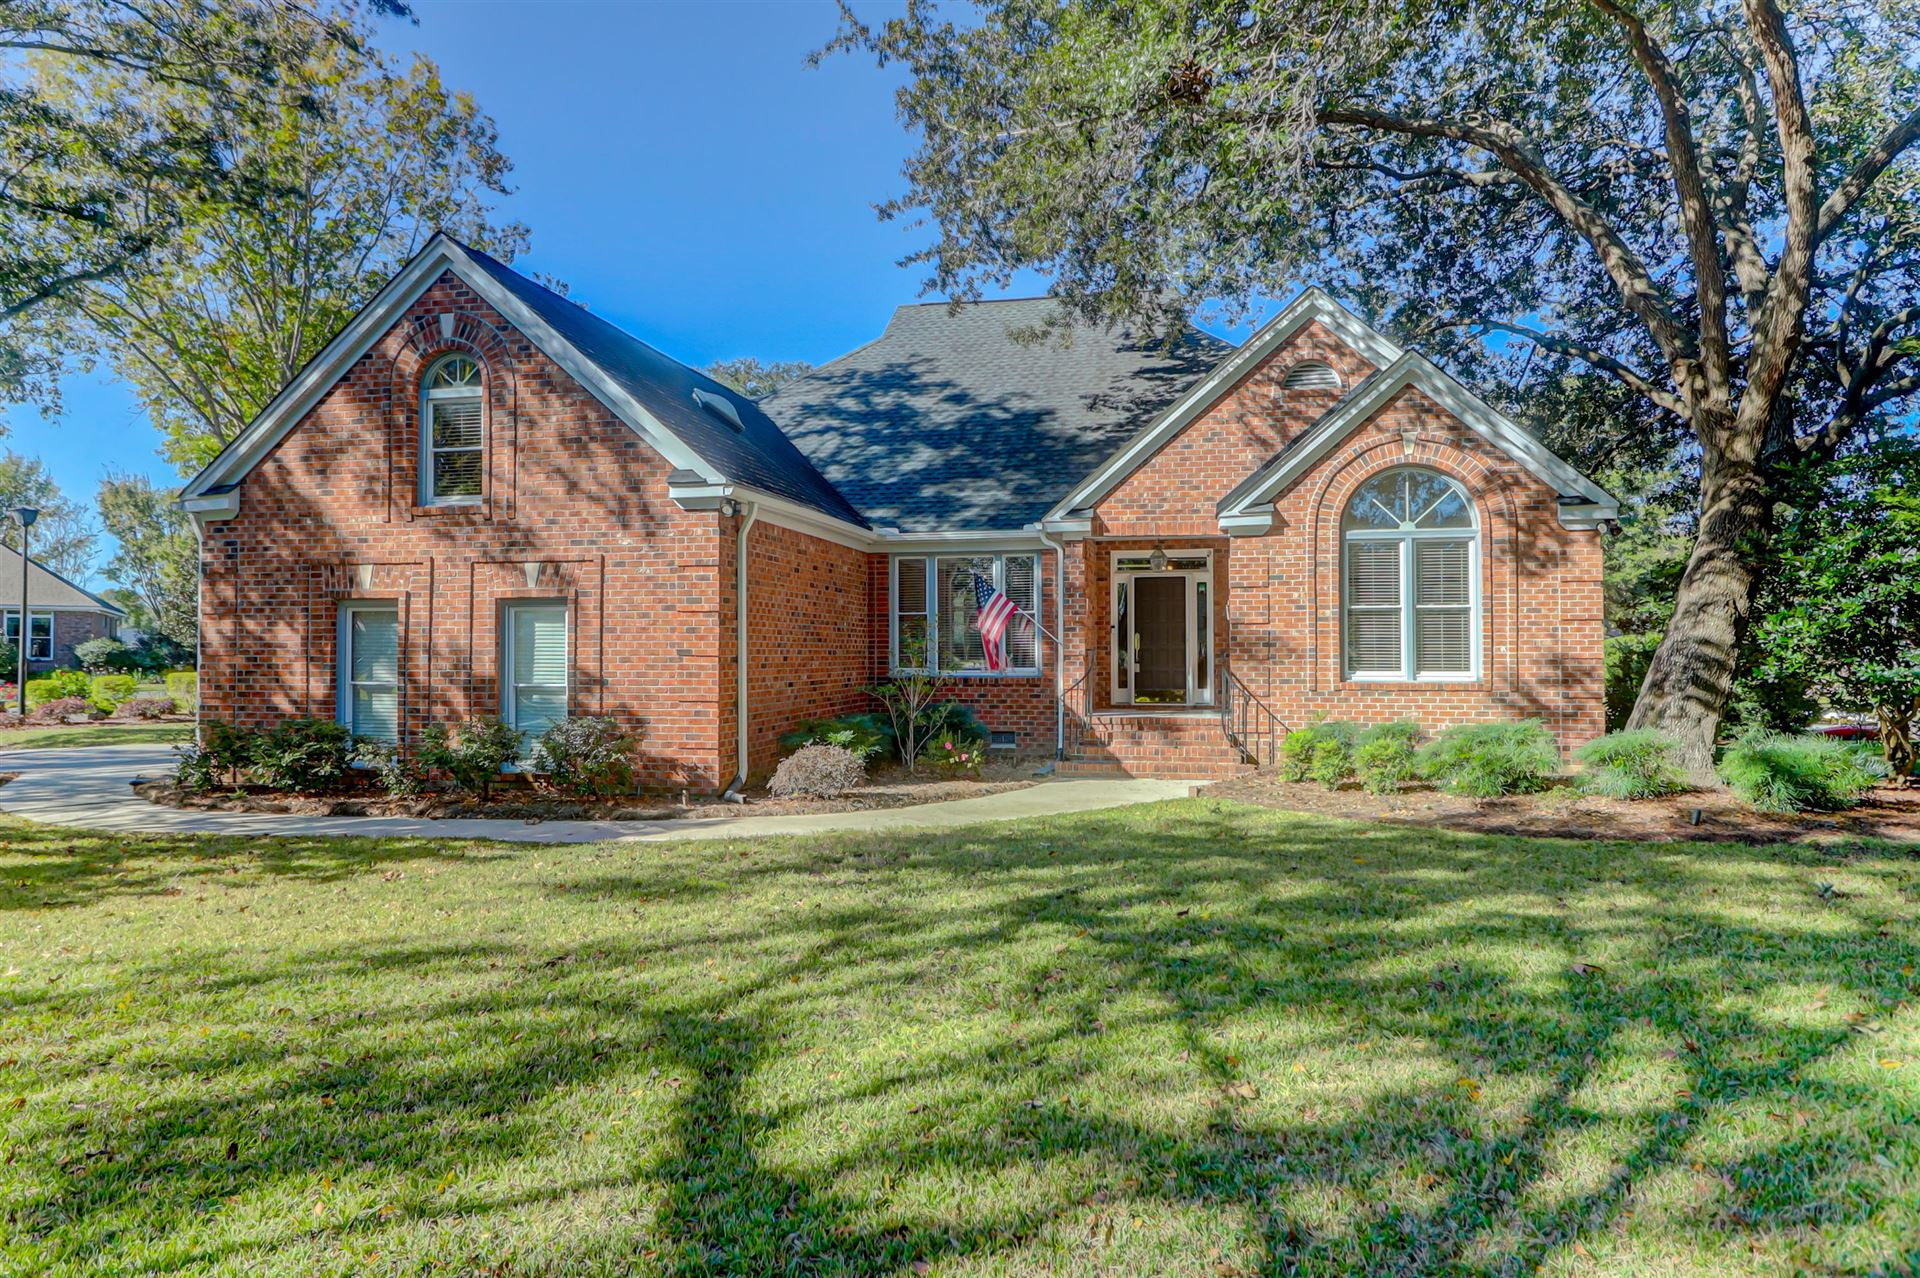 Photo of 1336 Tailwind Court, Mount Pleasant, SC 29464 (MLS # 20032130)